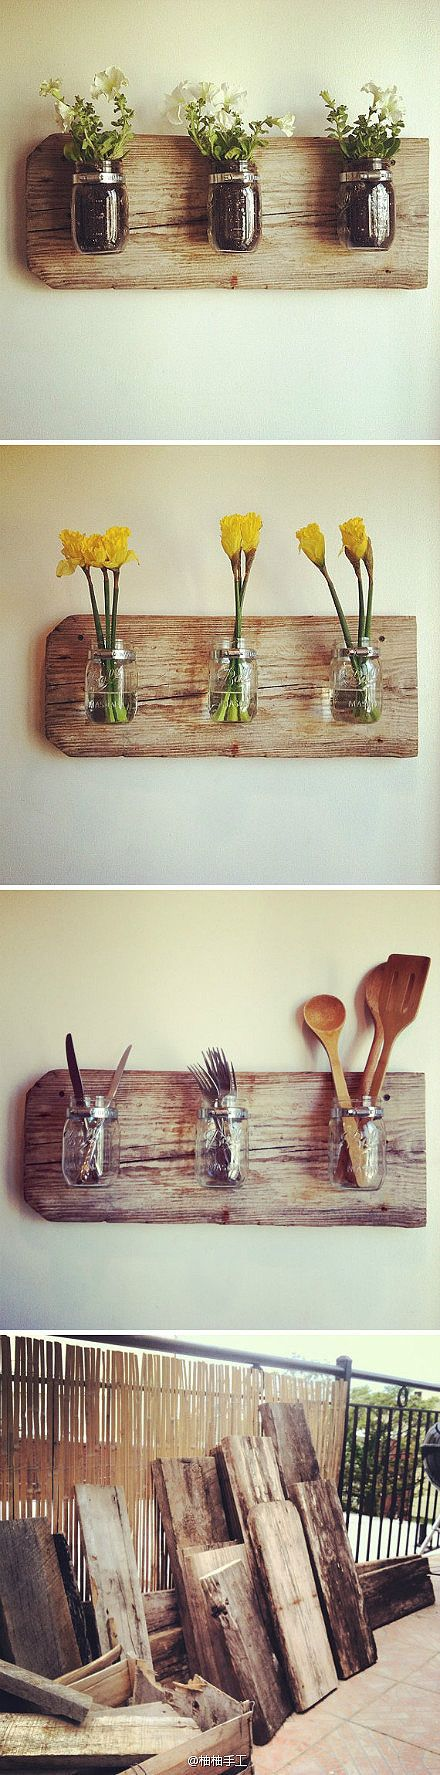 #DIY #Mason jar planters... Love this idea #recycle